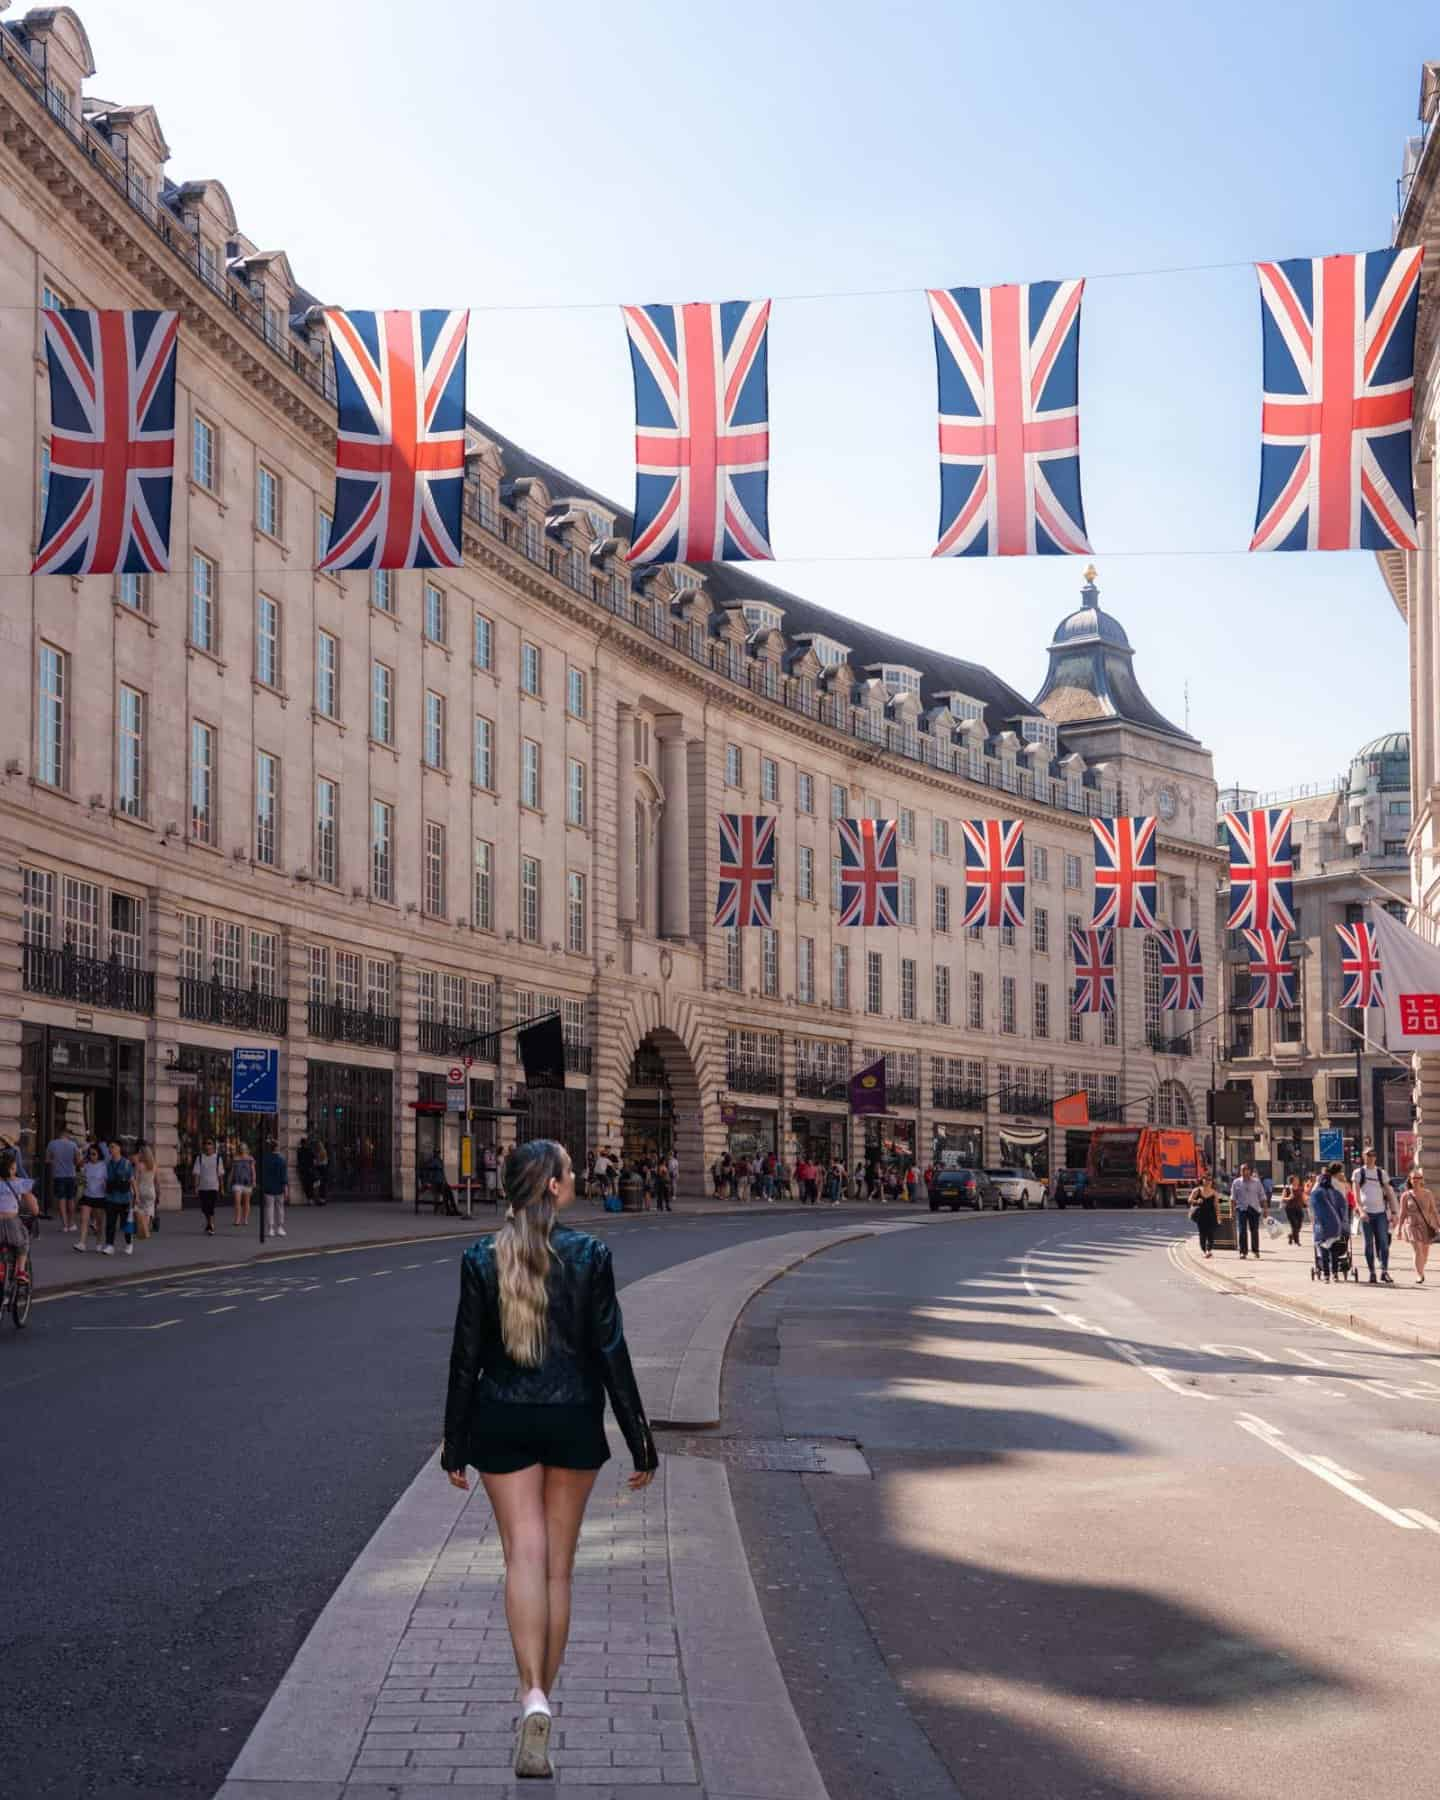 One of the most famous streets in London, Regent Street adorned with Union Jacks